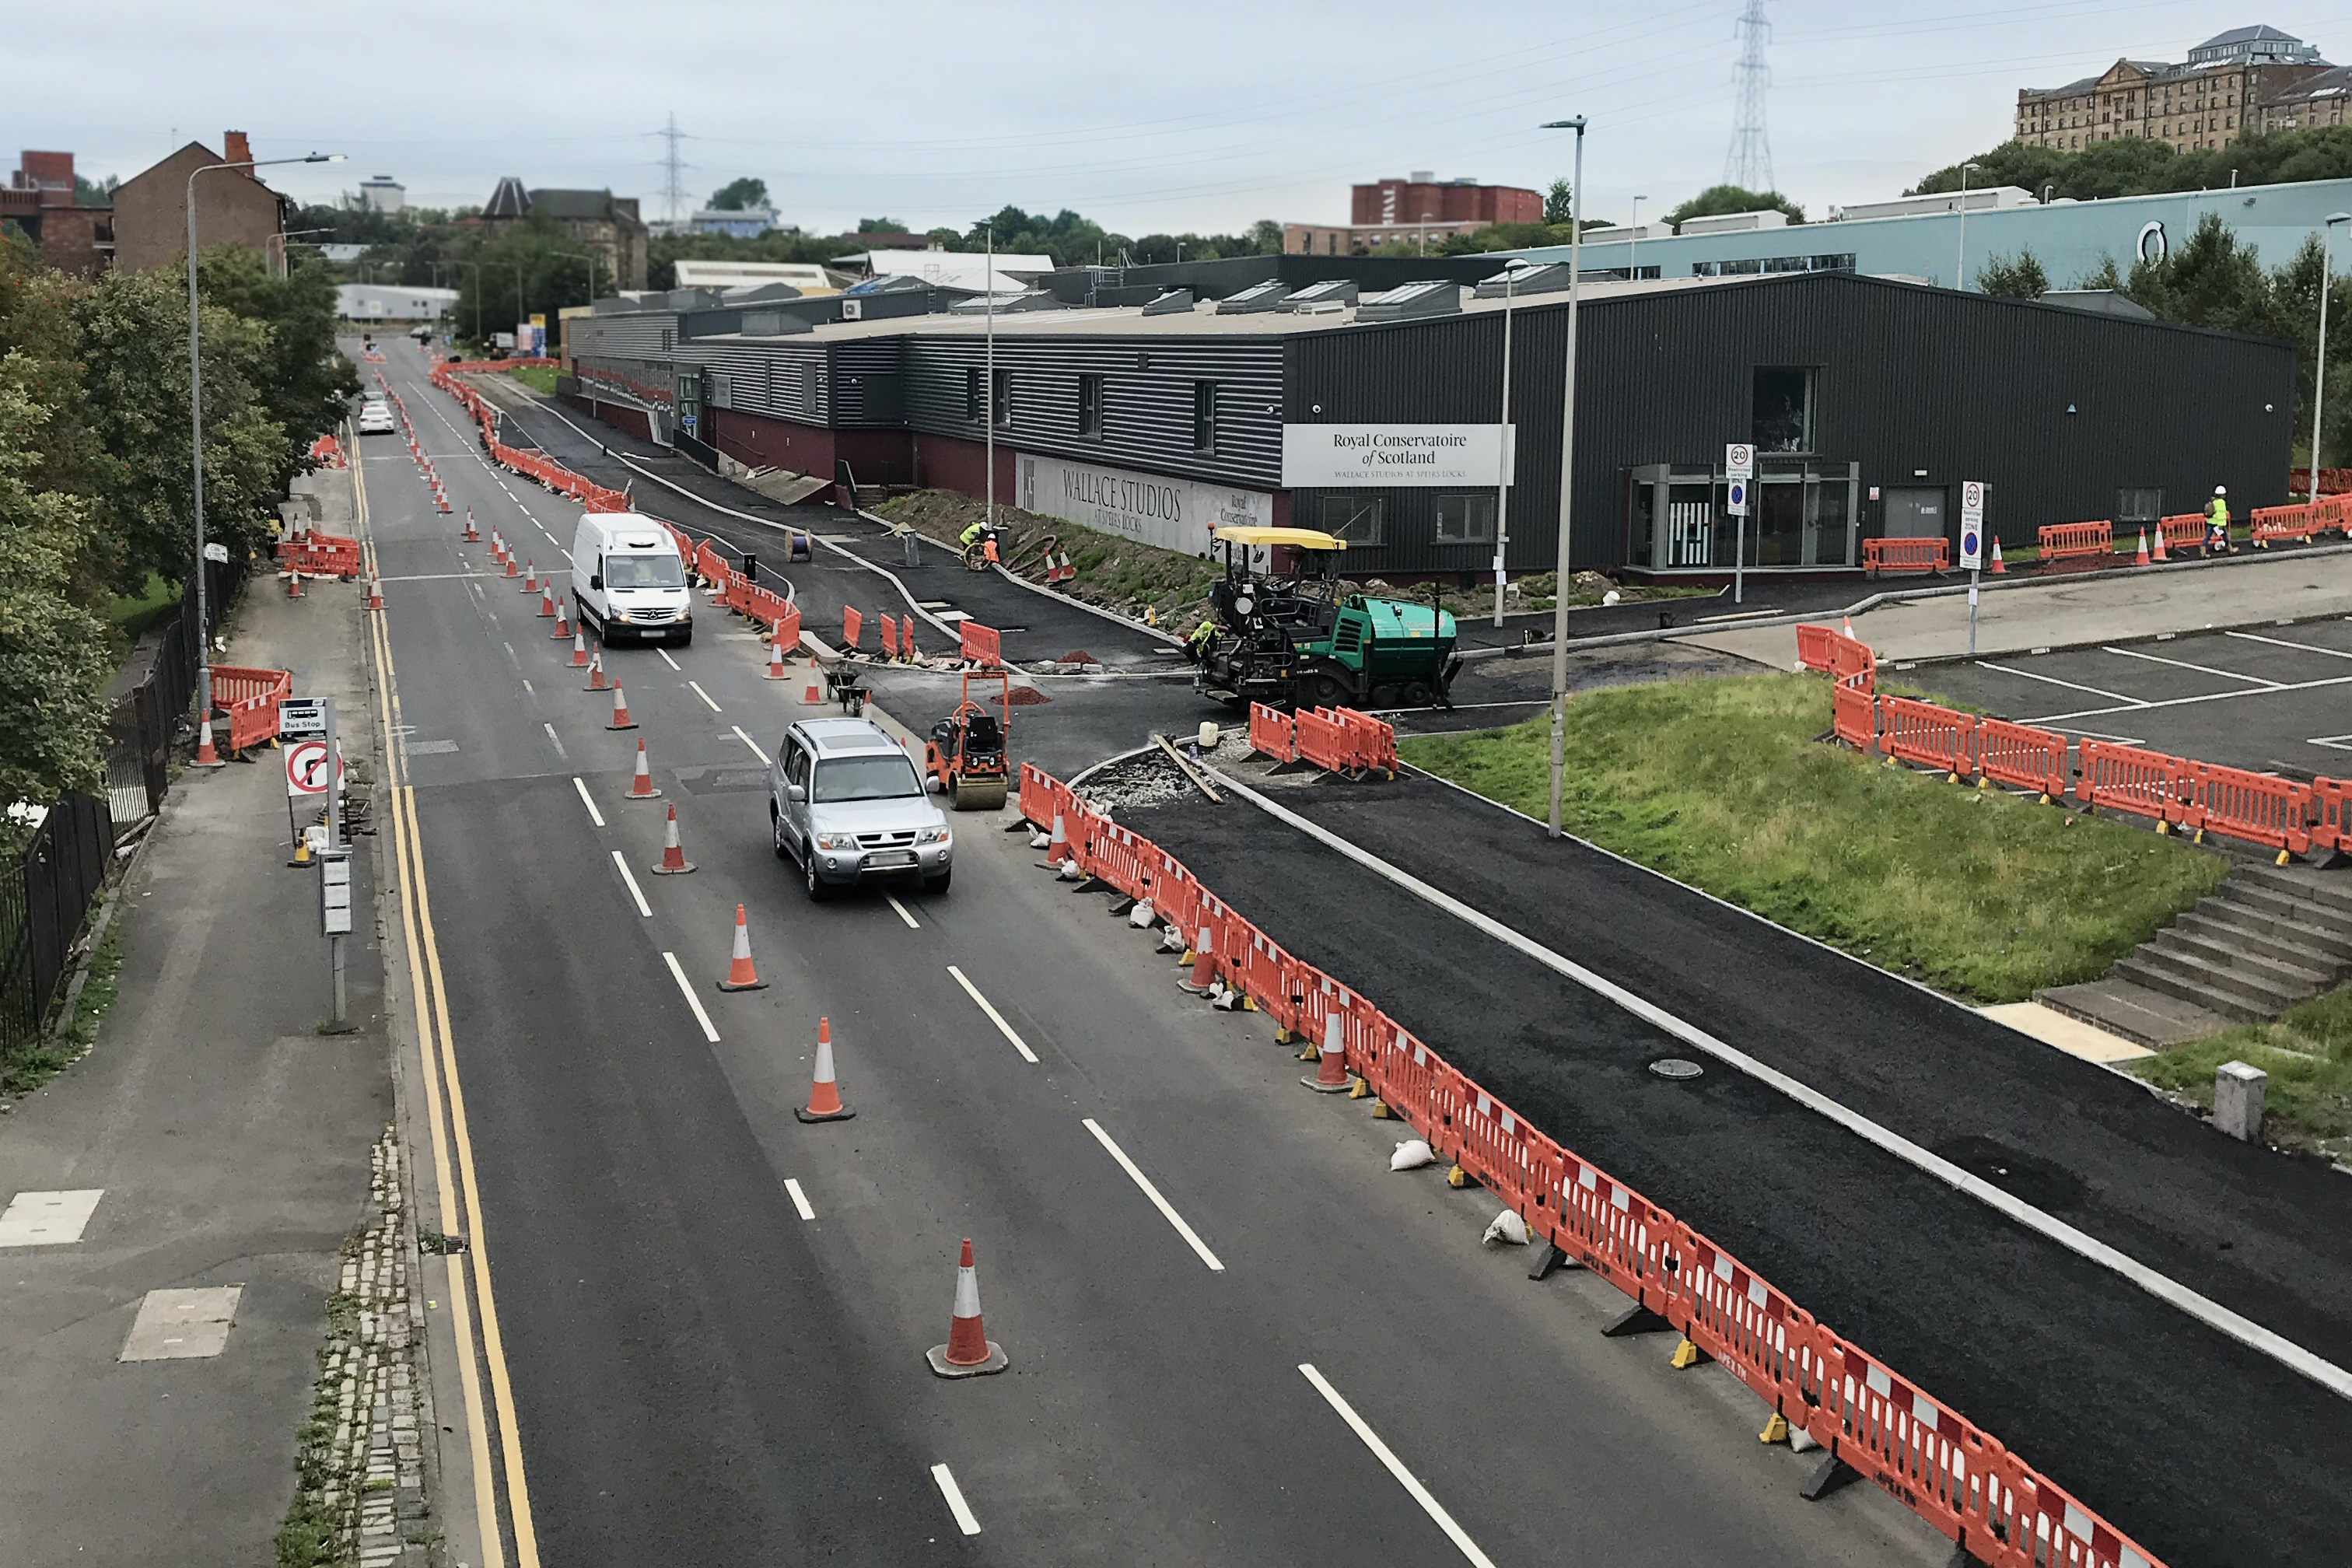 McGeady continue works on Connecting Woodside on Garscube Road